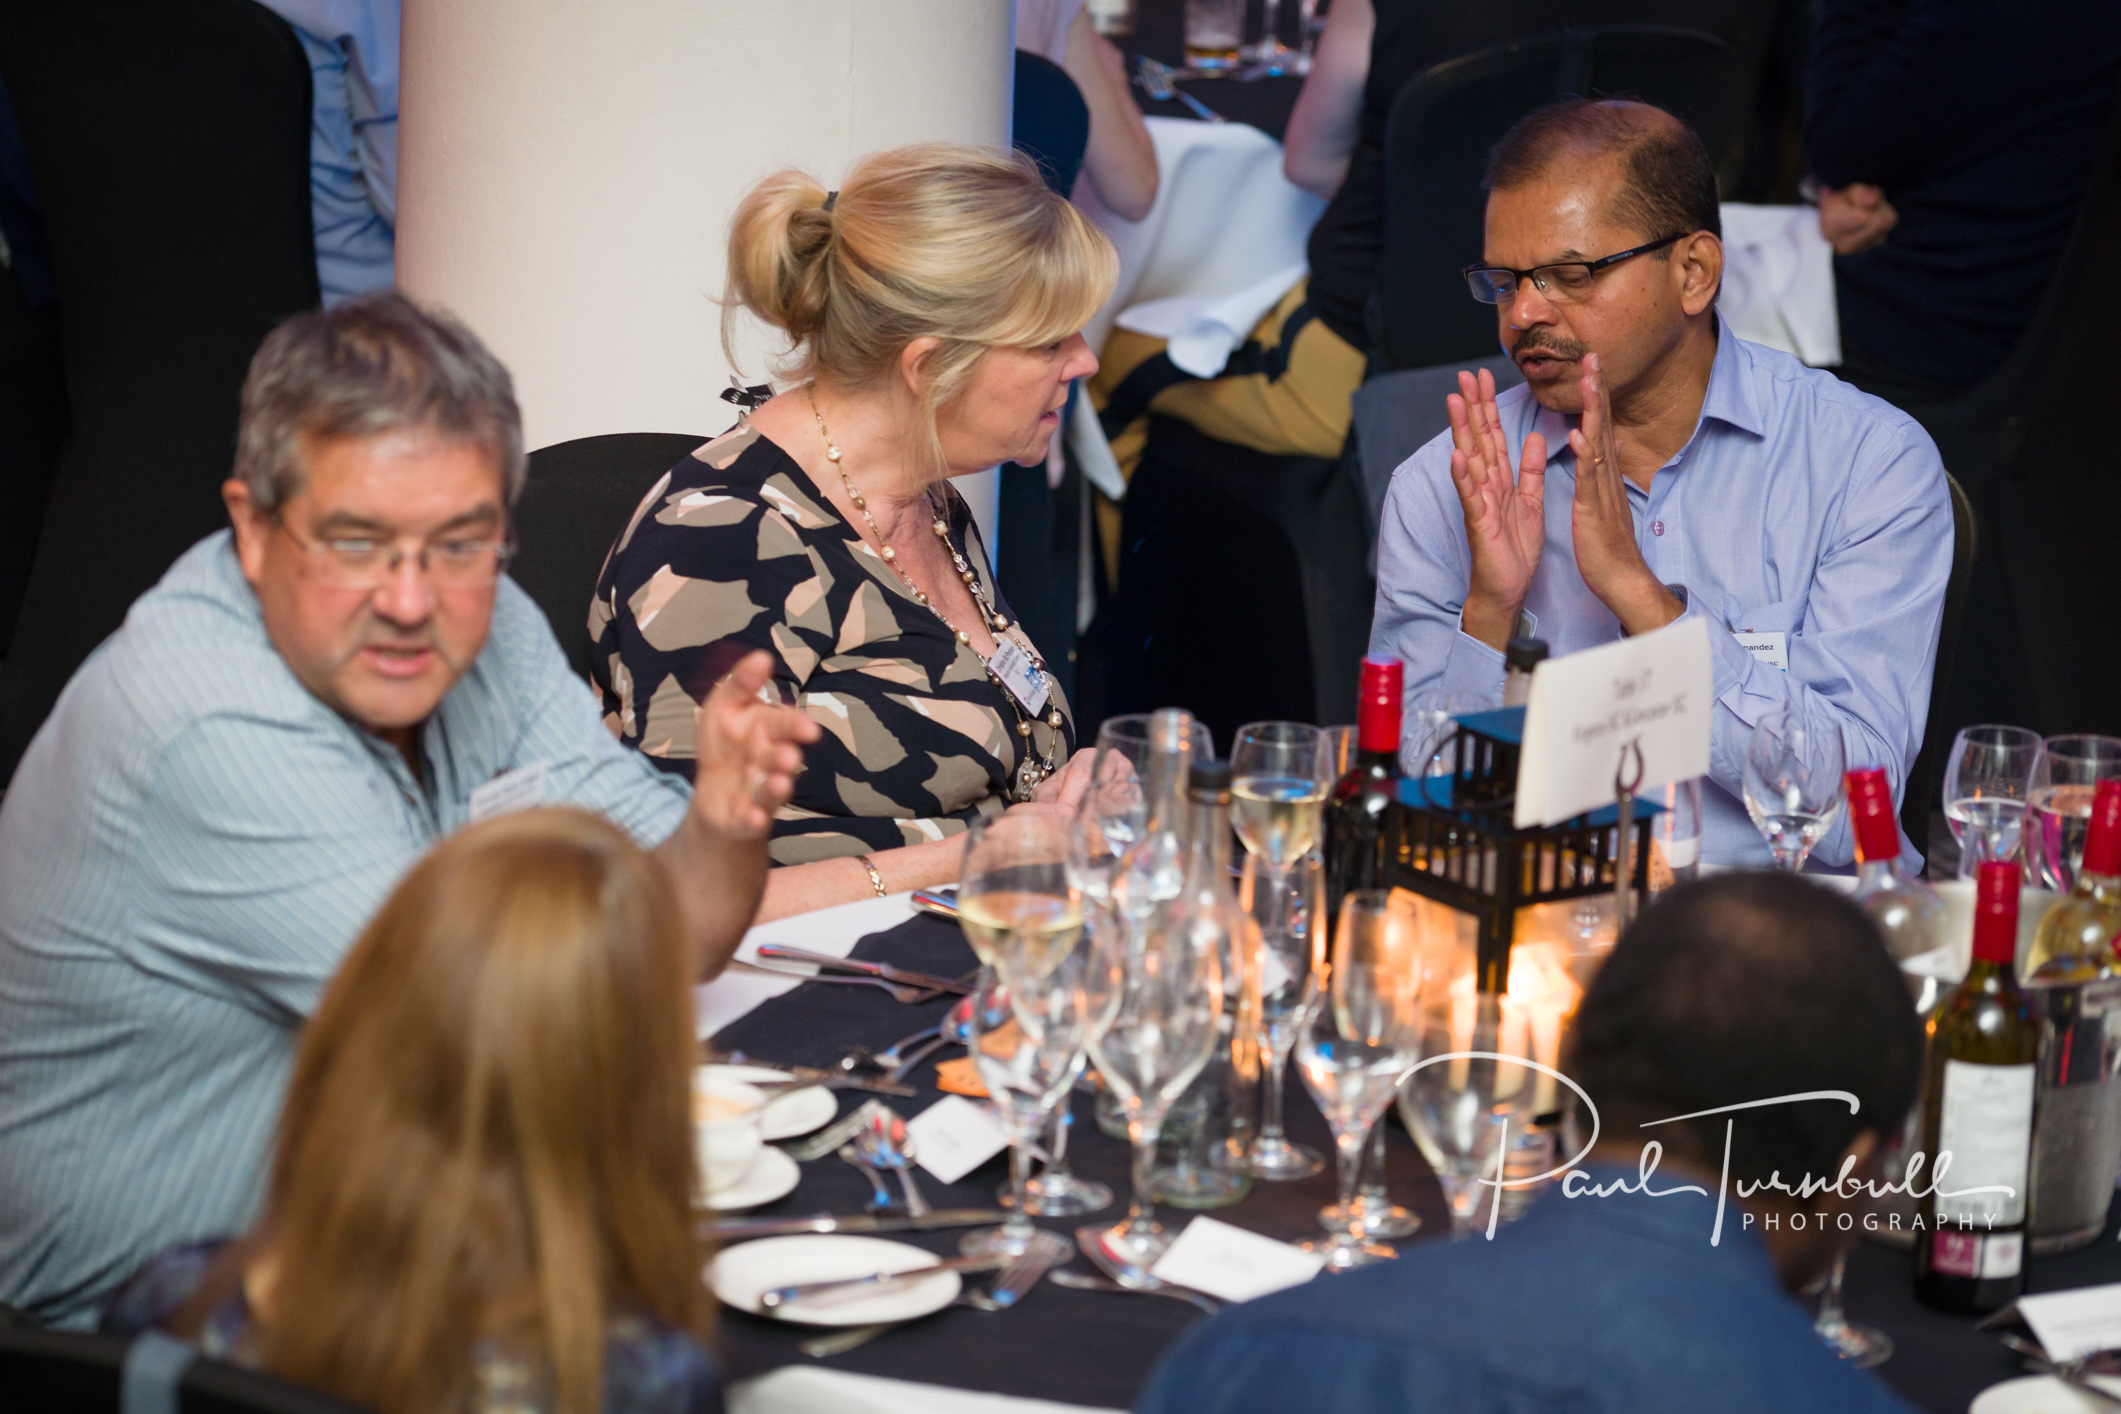 conference-event-photographer-queens-hotel-leeds-yorkshire-016.jpg